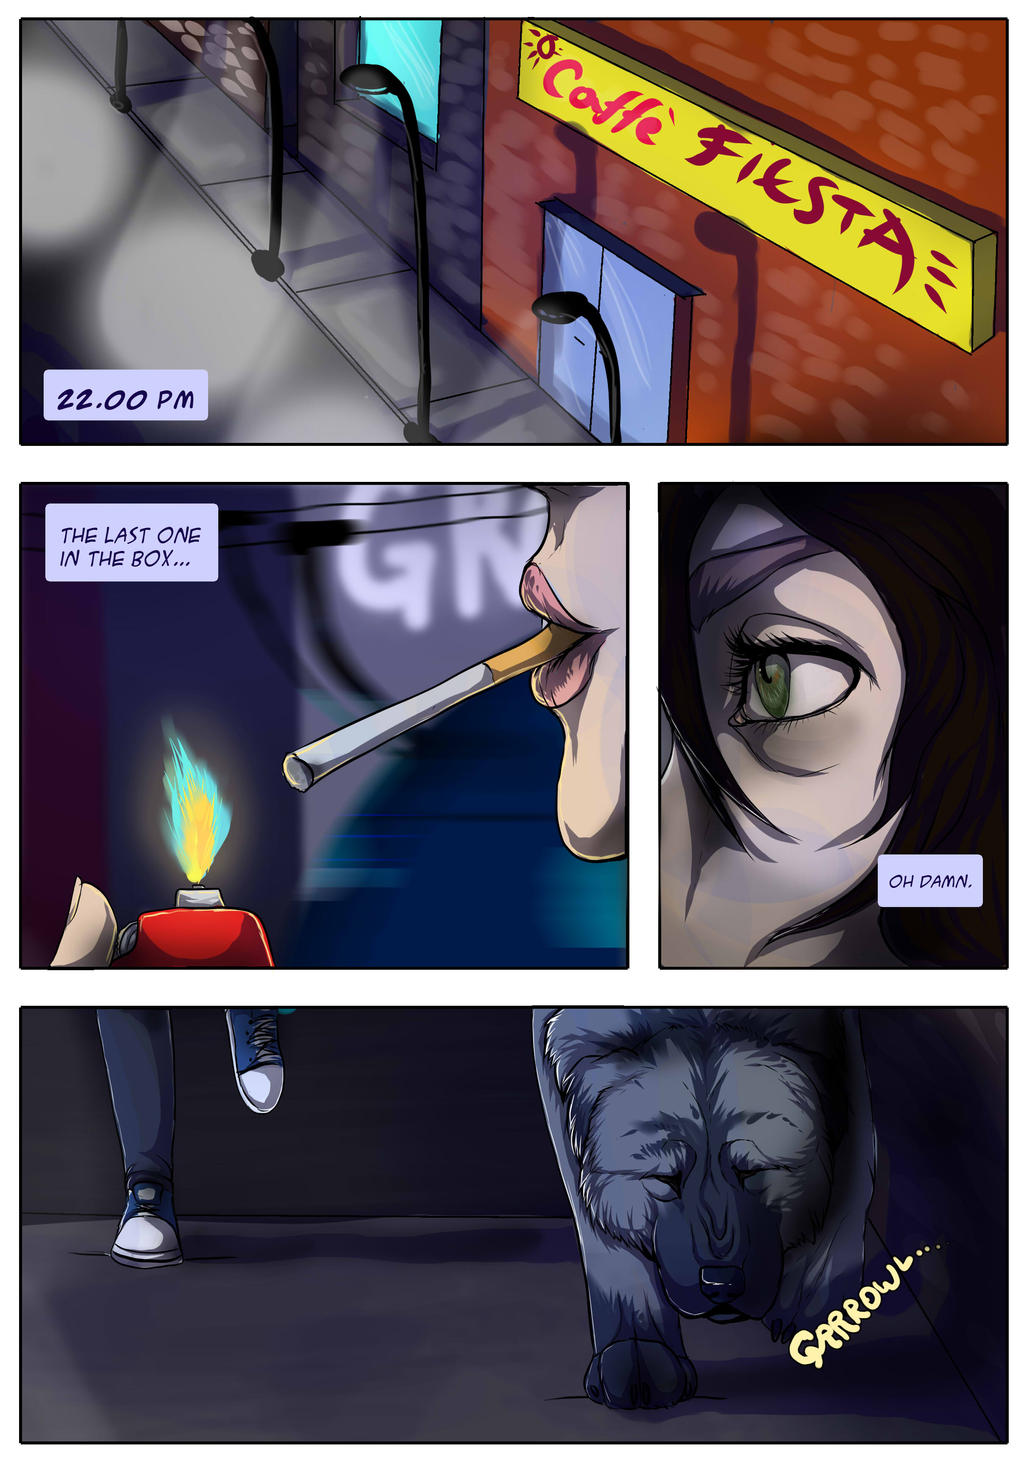 OoB-Page-1 by Tanchie97